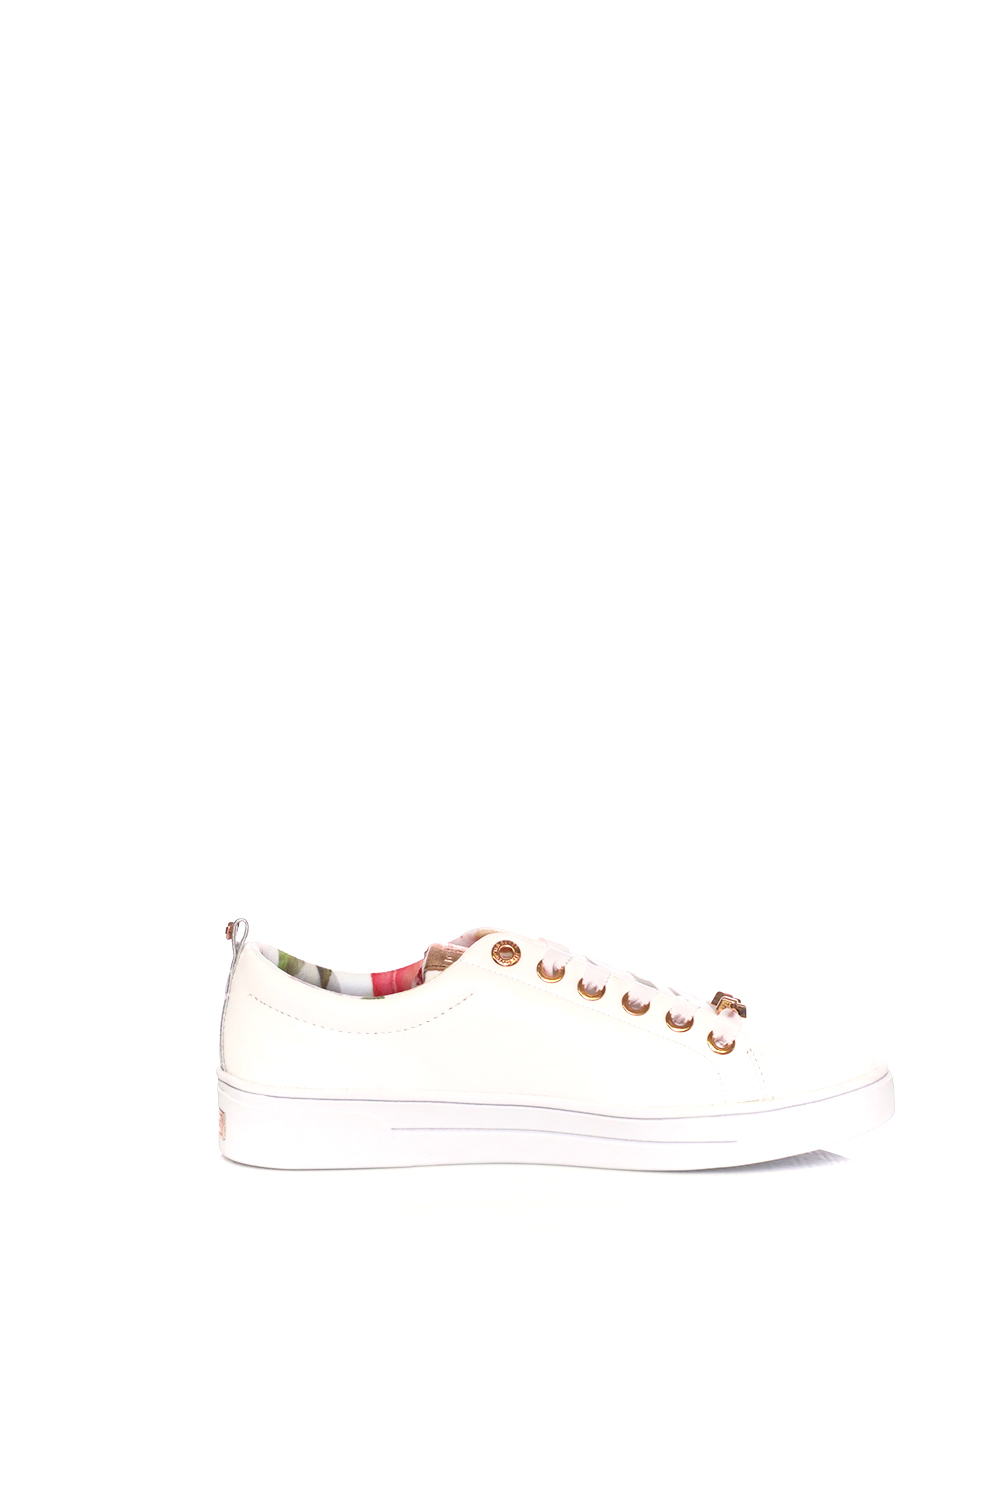 TED BAKER – Γυναικεία sneakers Ted Baker KELLEI λευκά